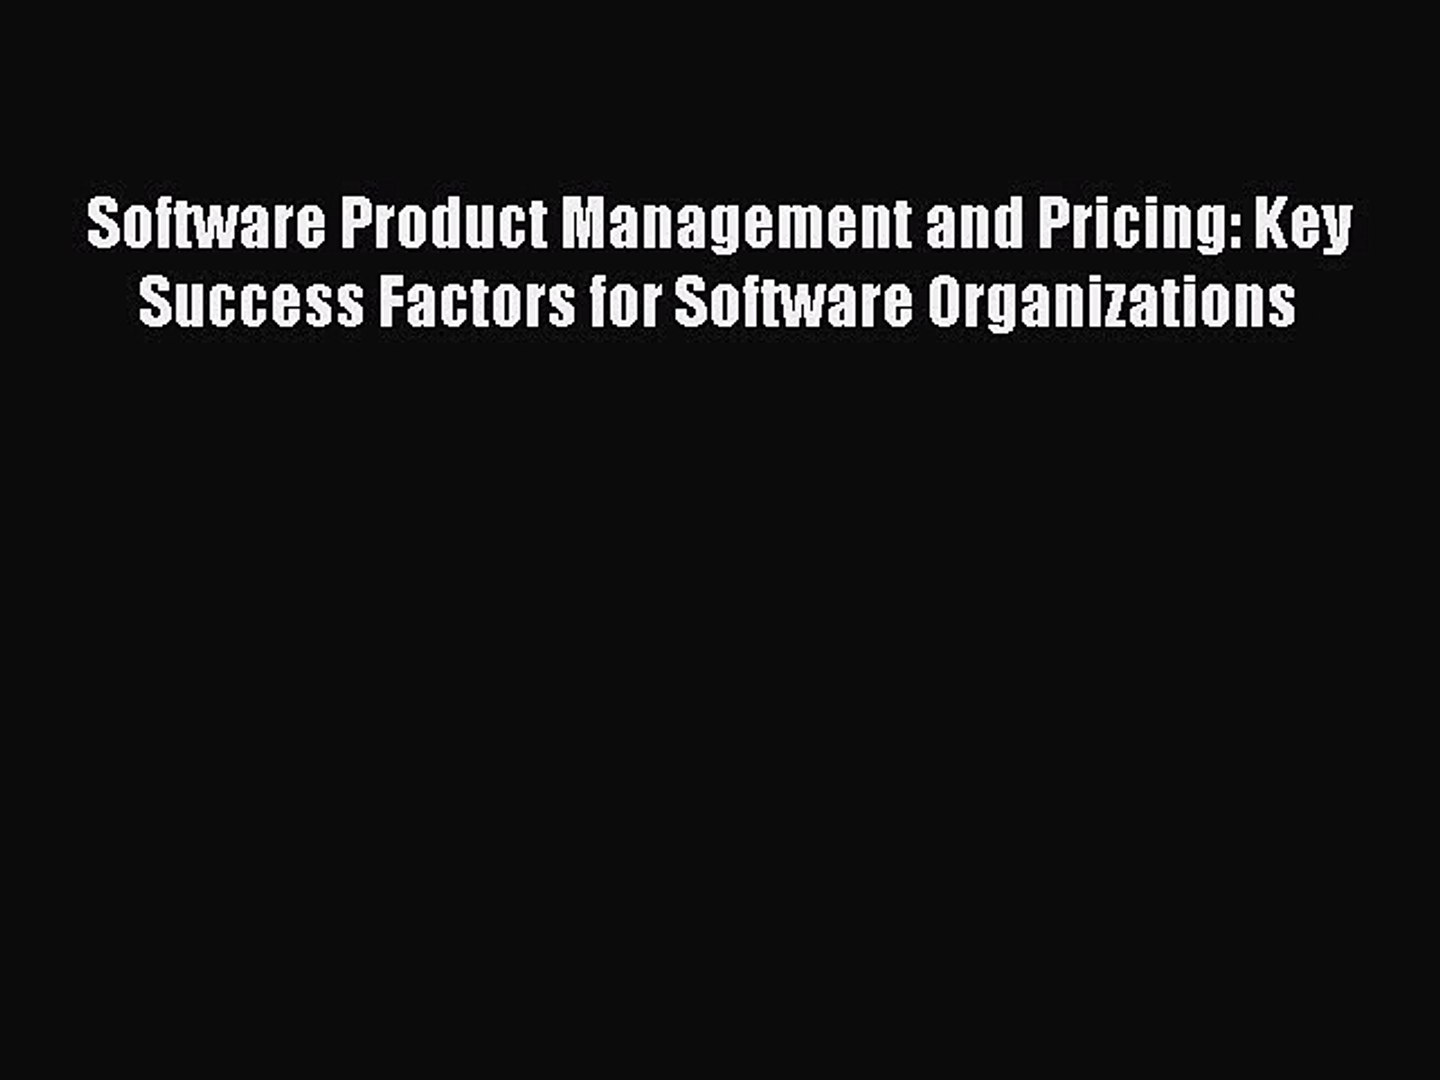 Read Software Product Management and Pricing: Key Success Factors for Software Organizations